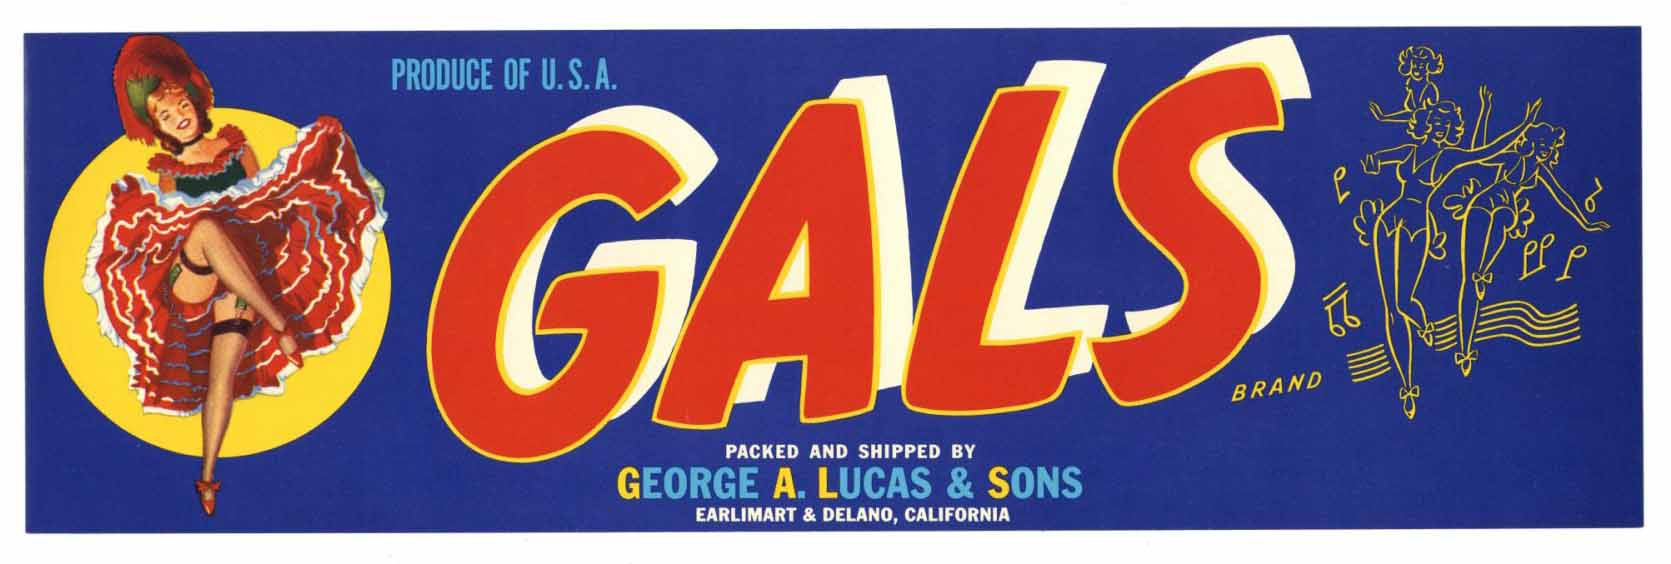 Gals Brand Vintage Fruit Crate Label